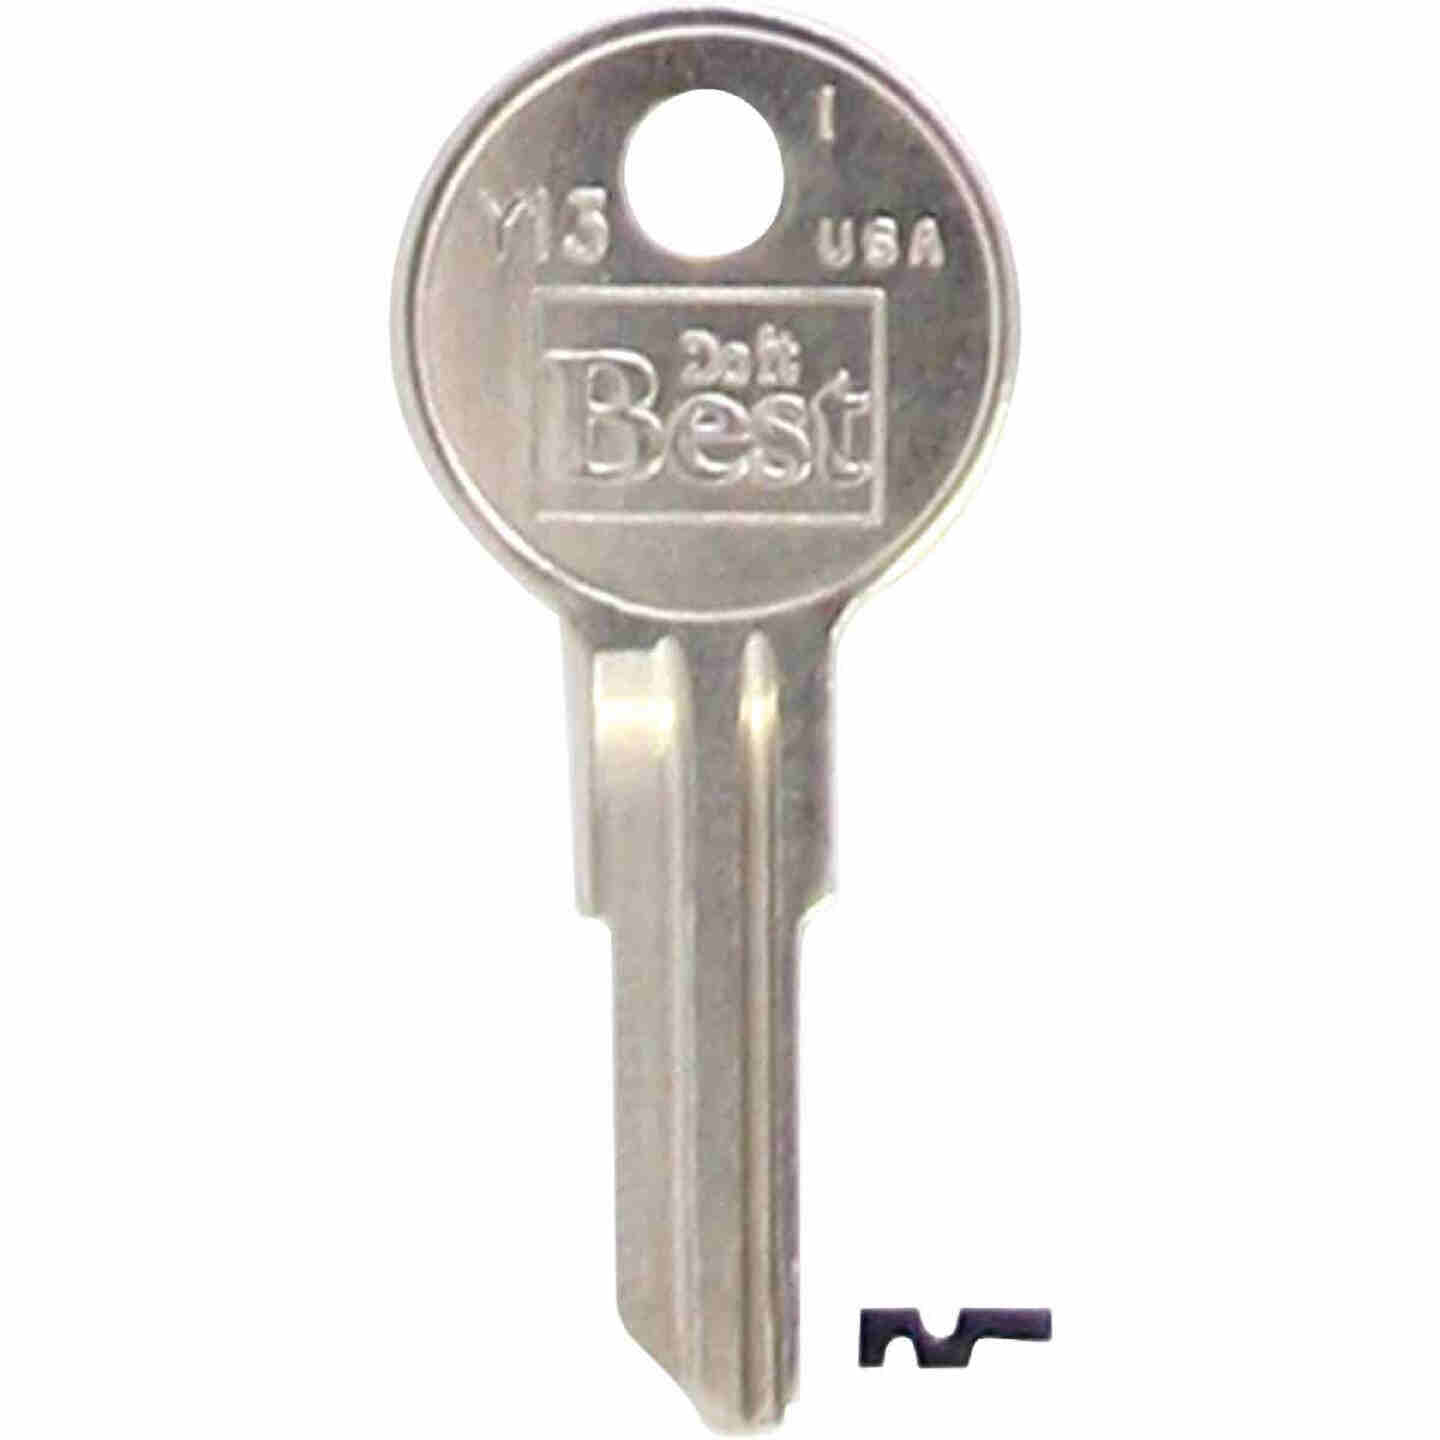 Do it Best Yale Nickel Plated House Key, Y13 (10-Pack) Image 1